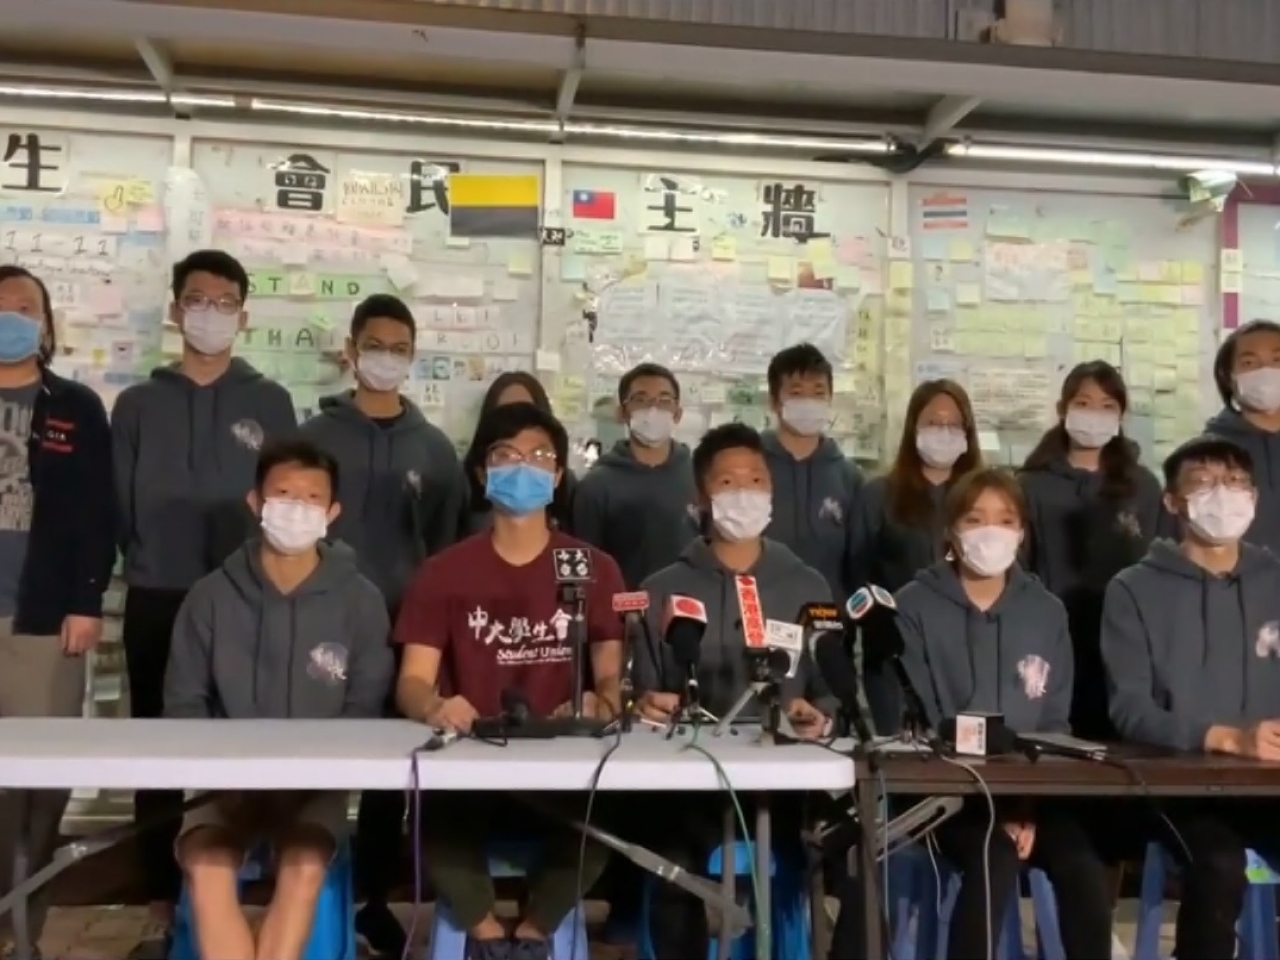 Pupil union slams CUHK's 'suppression and threats'